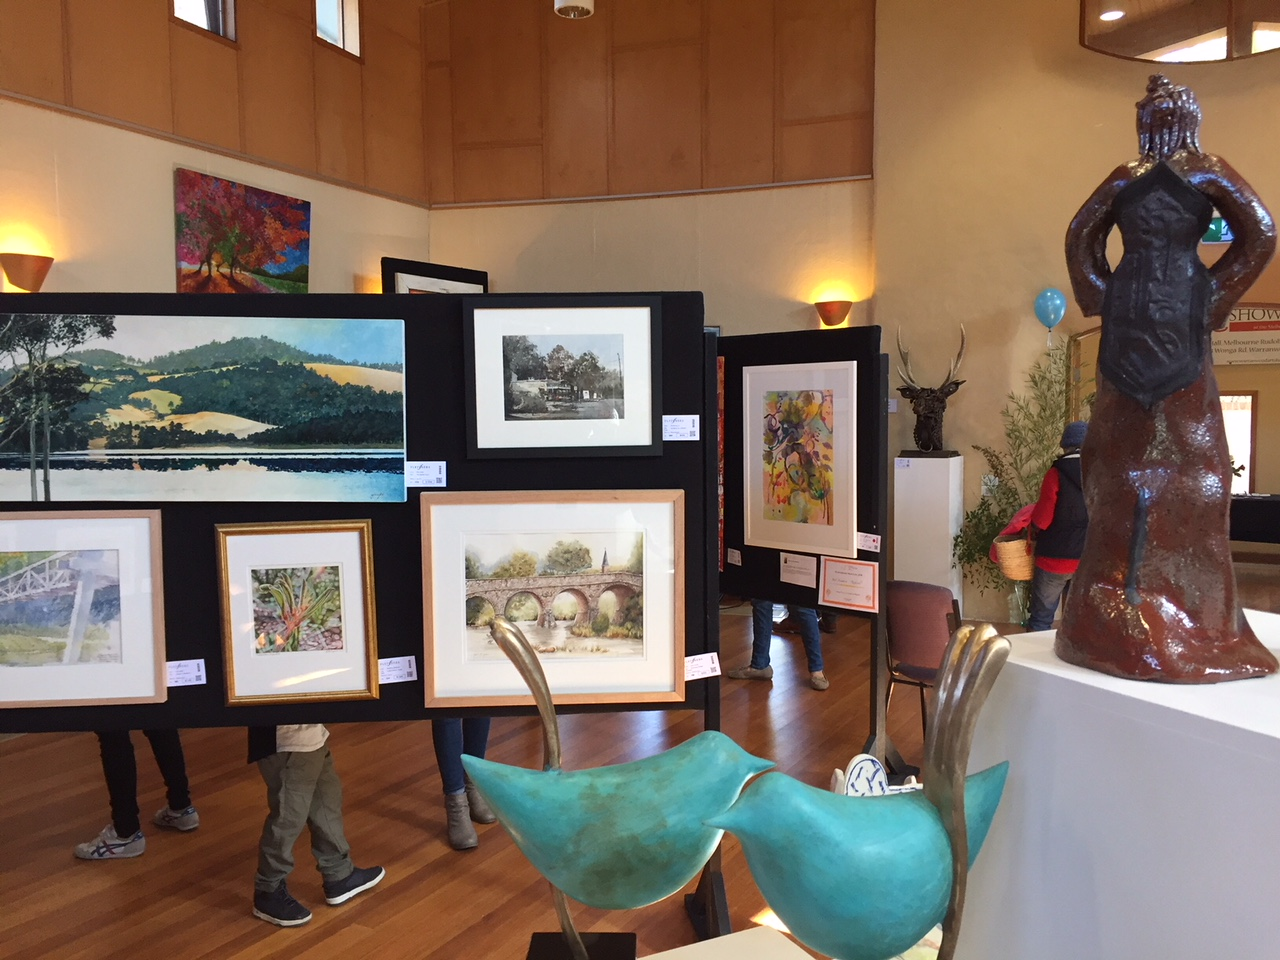 Stunning art at 2018 art show including Ted Secombe's Wrens in foreground